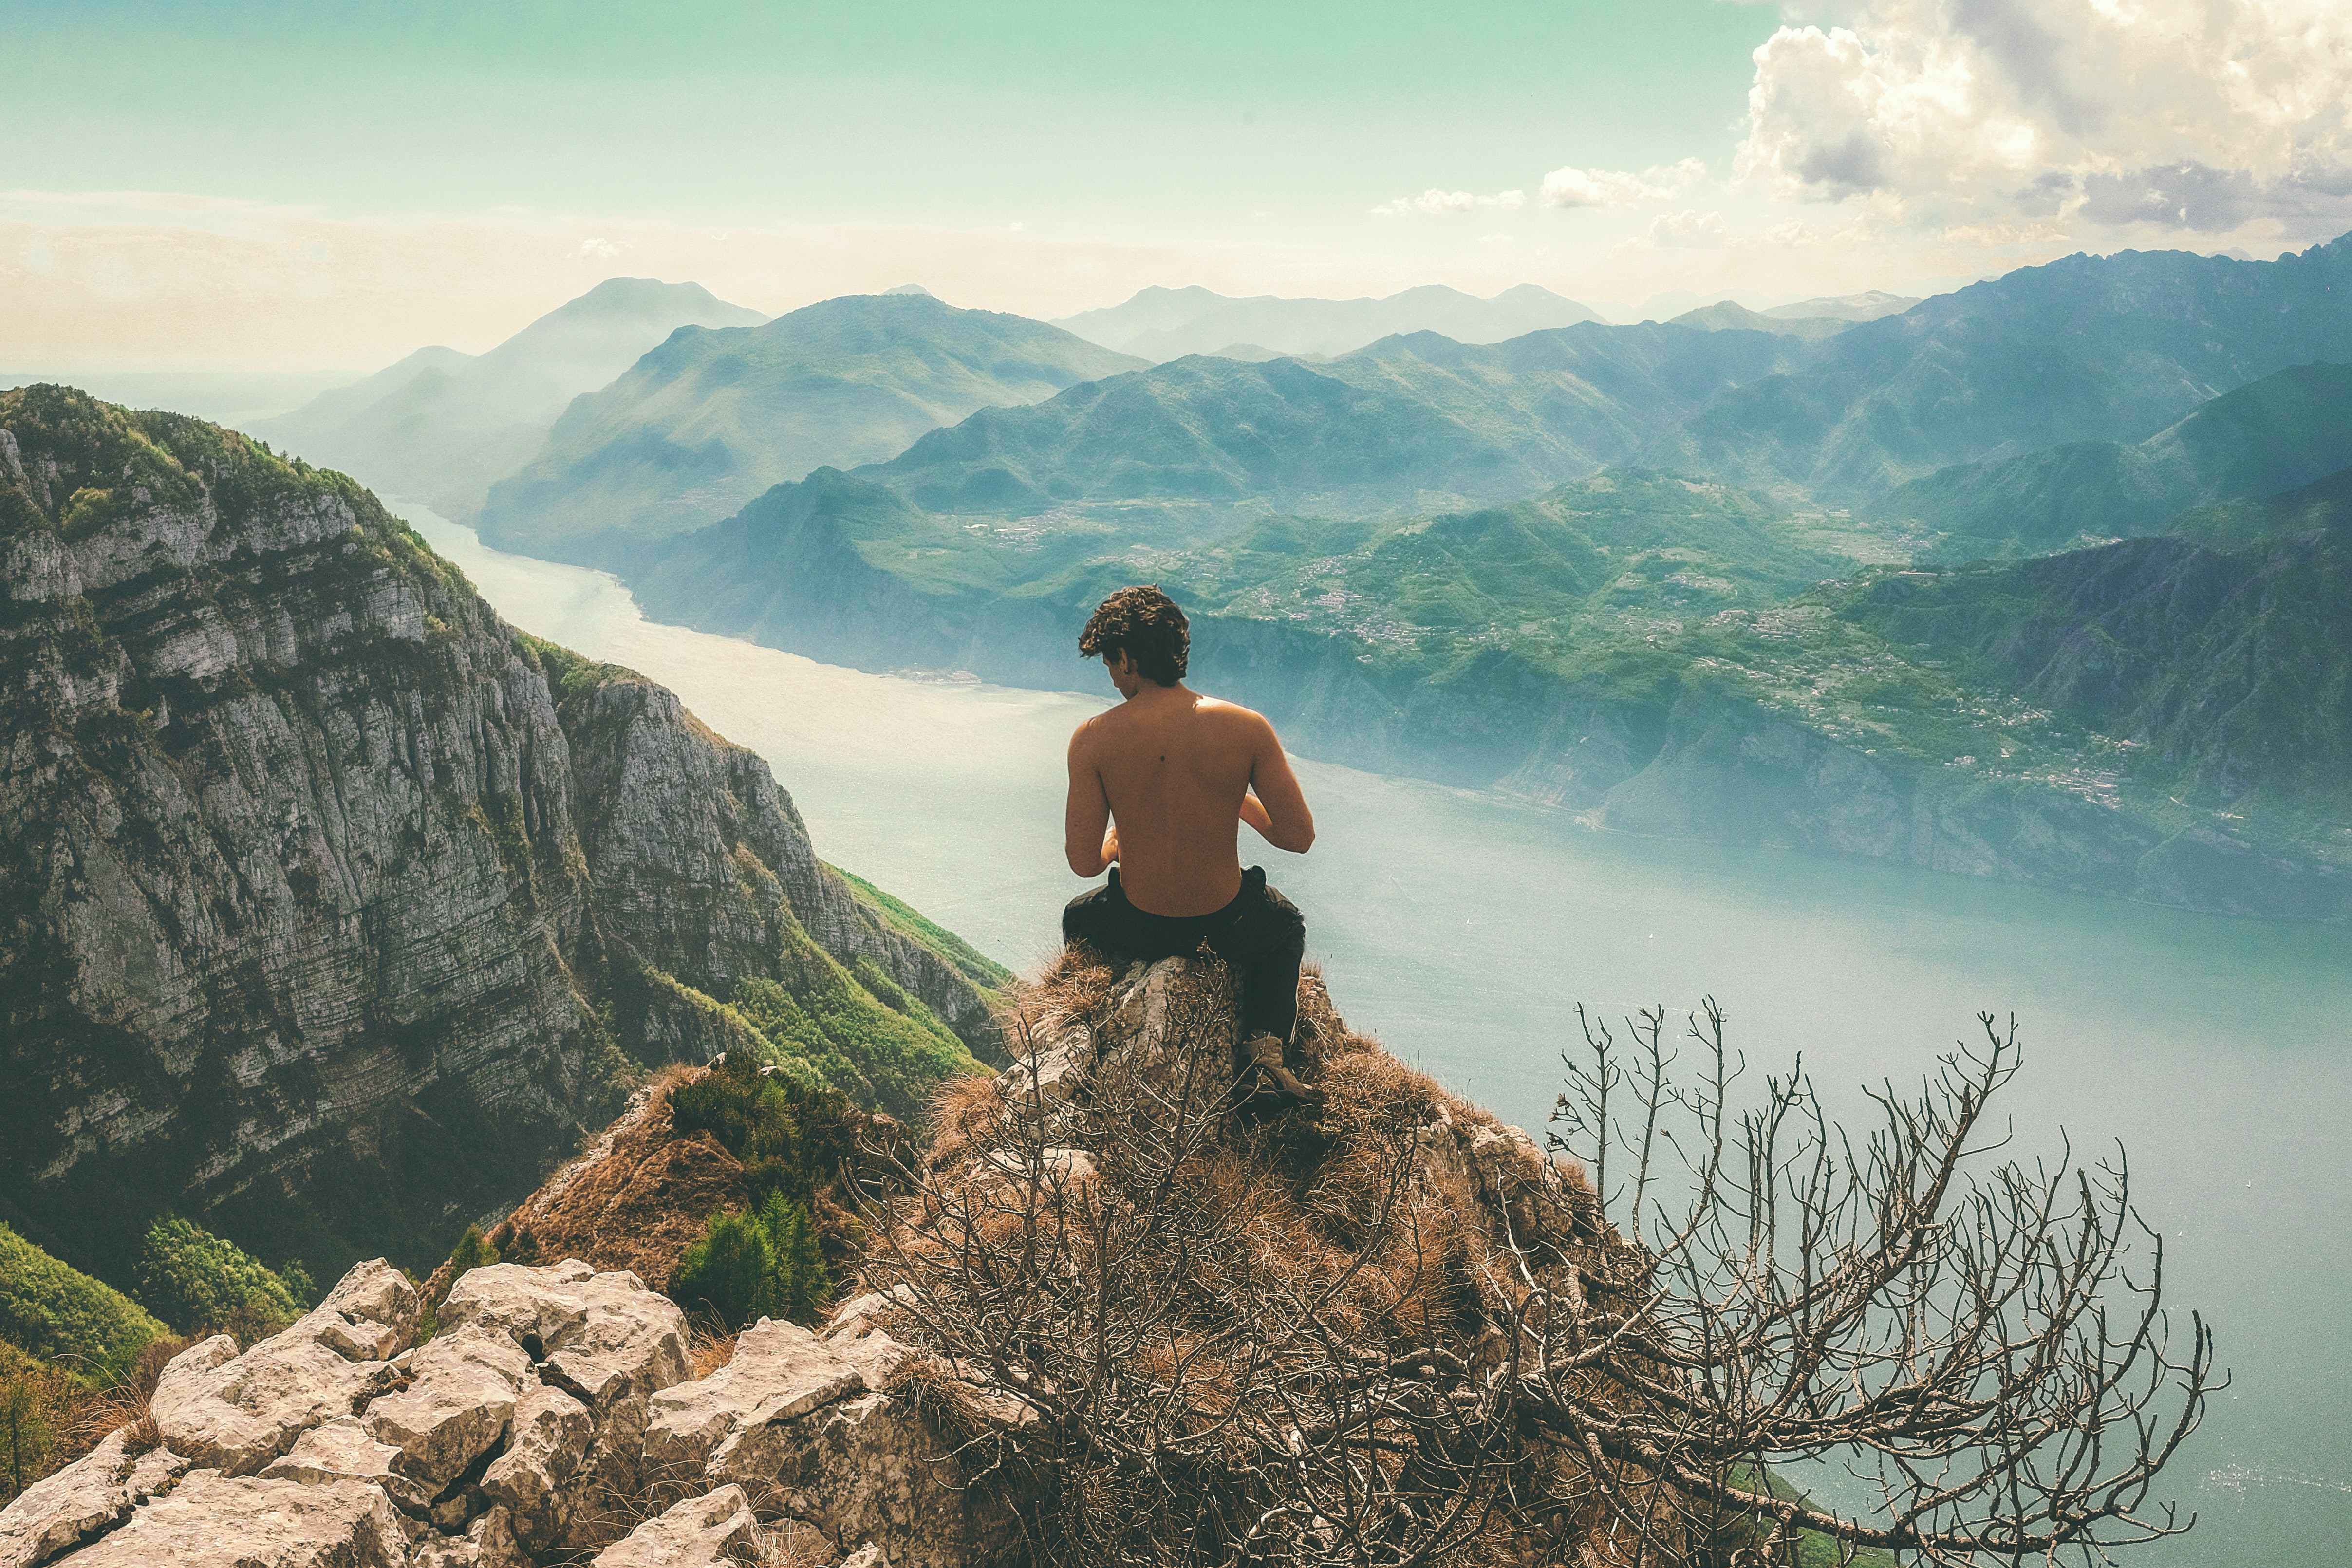 Man sits on the edge of a rocky mountain bluff